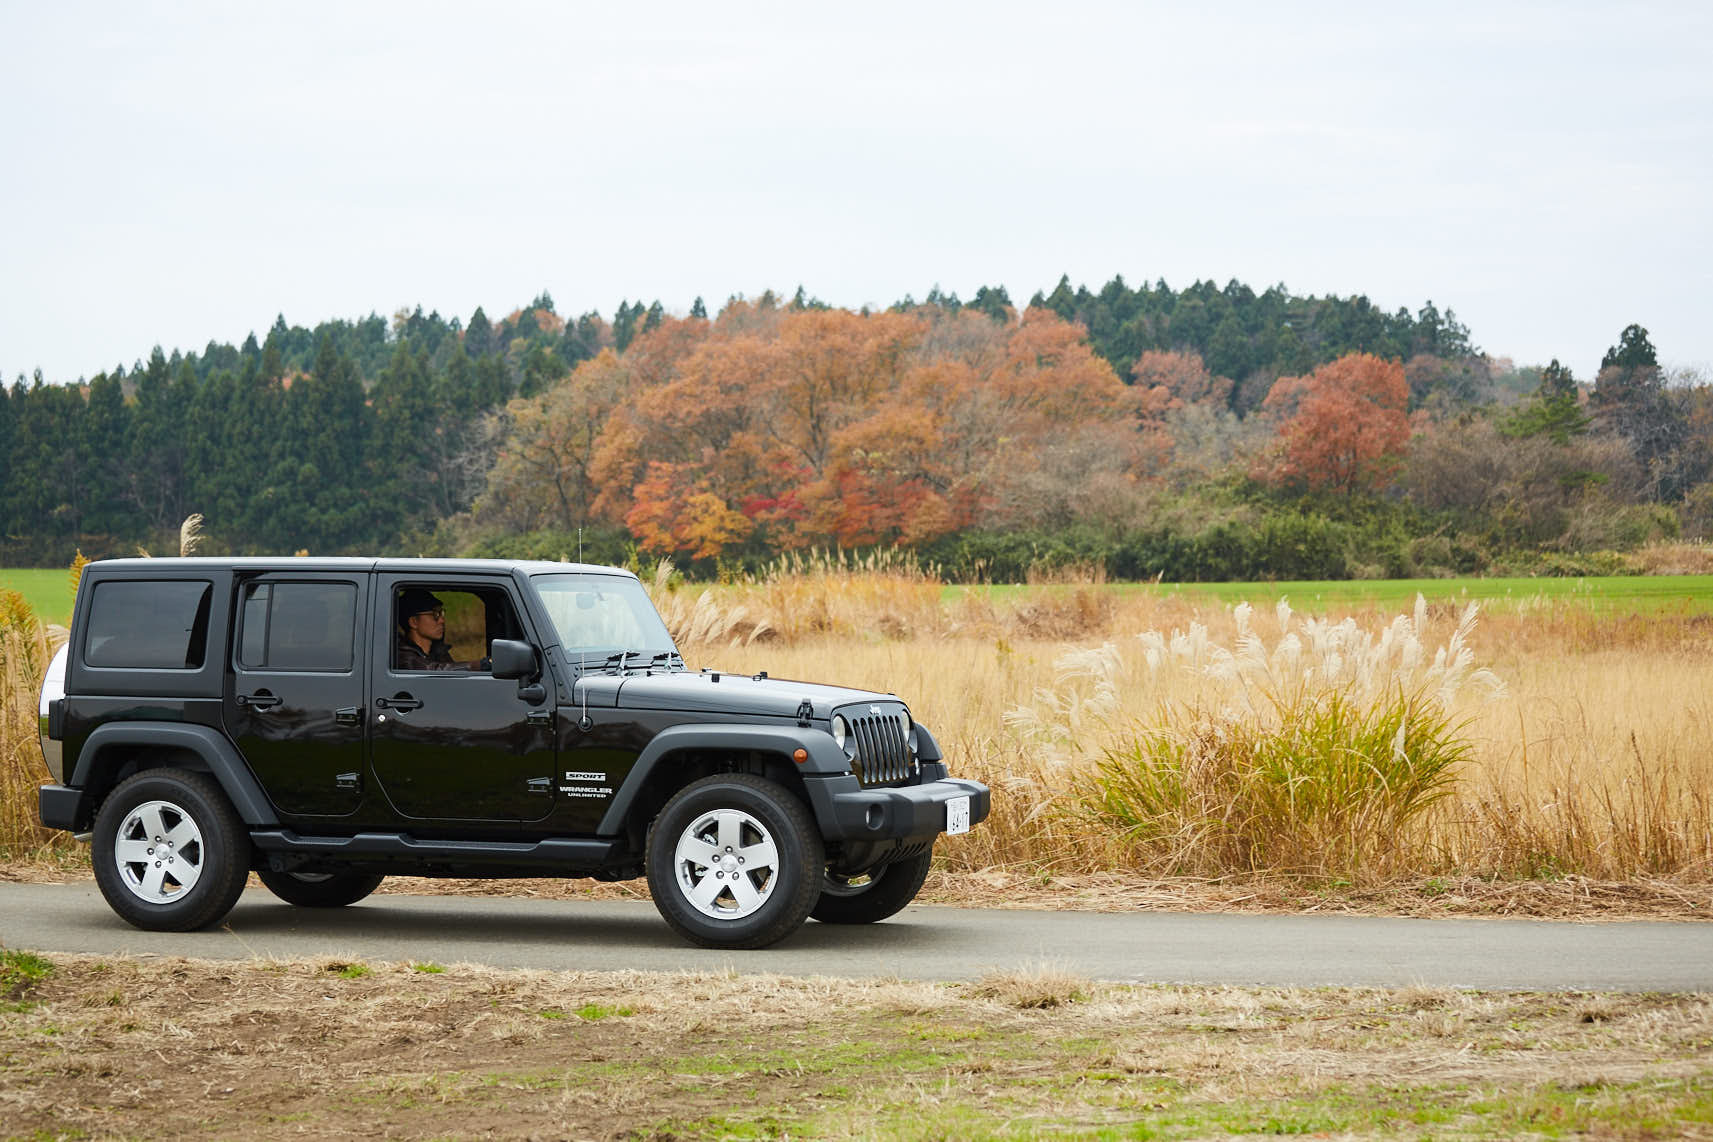 aj_382 My Jeep®,My Life. ボクとJeep®の暮らしかた。シェフ・相場正一郎